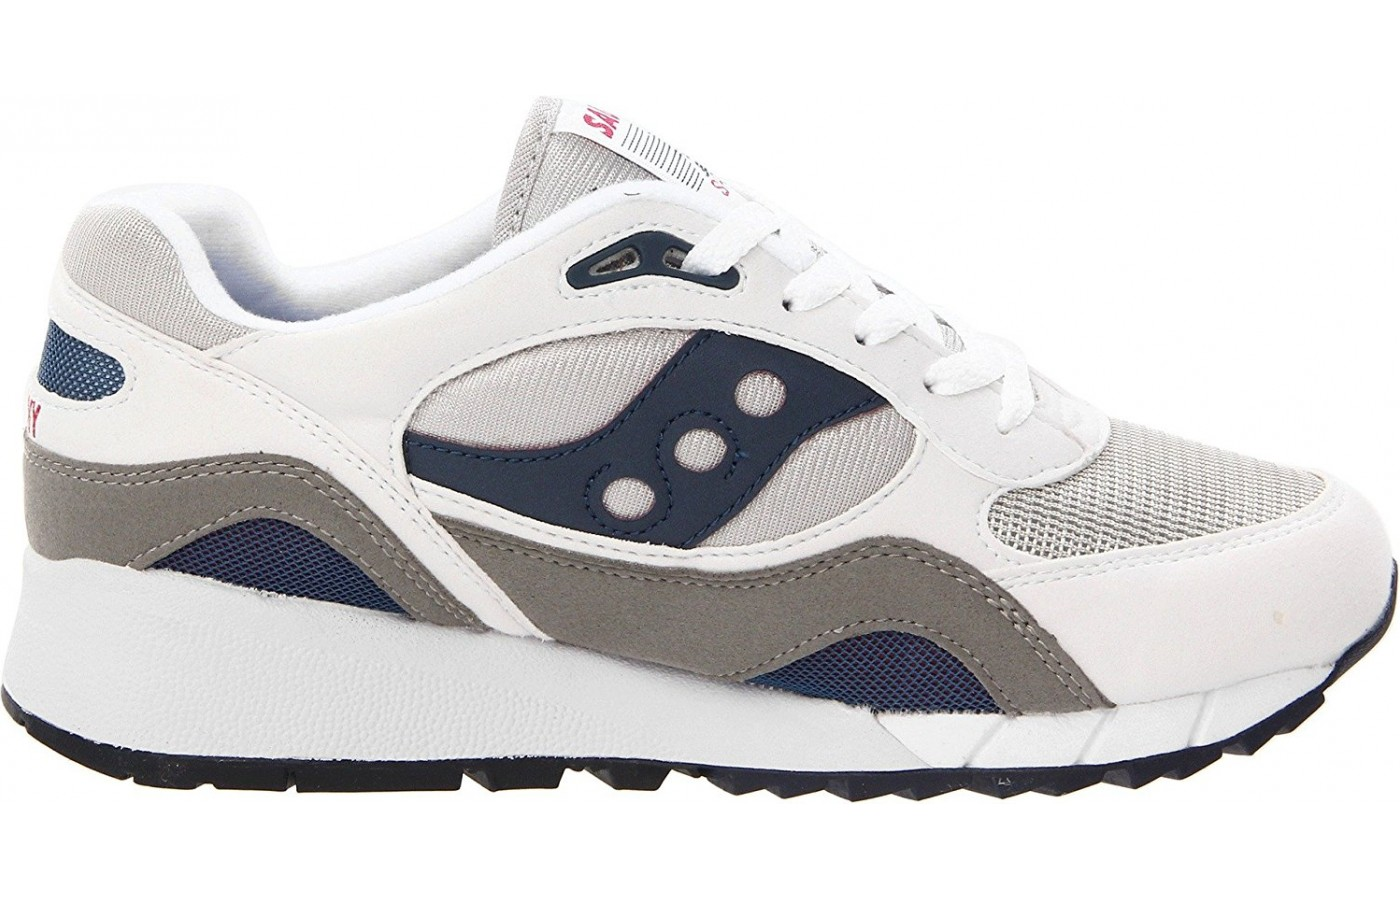 Saucony Shadow 6000 opposite side